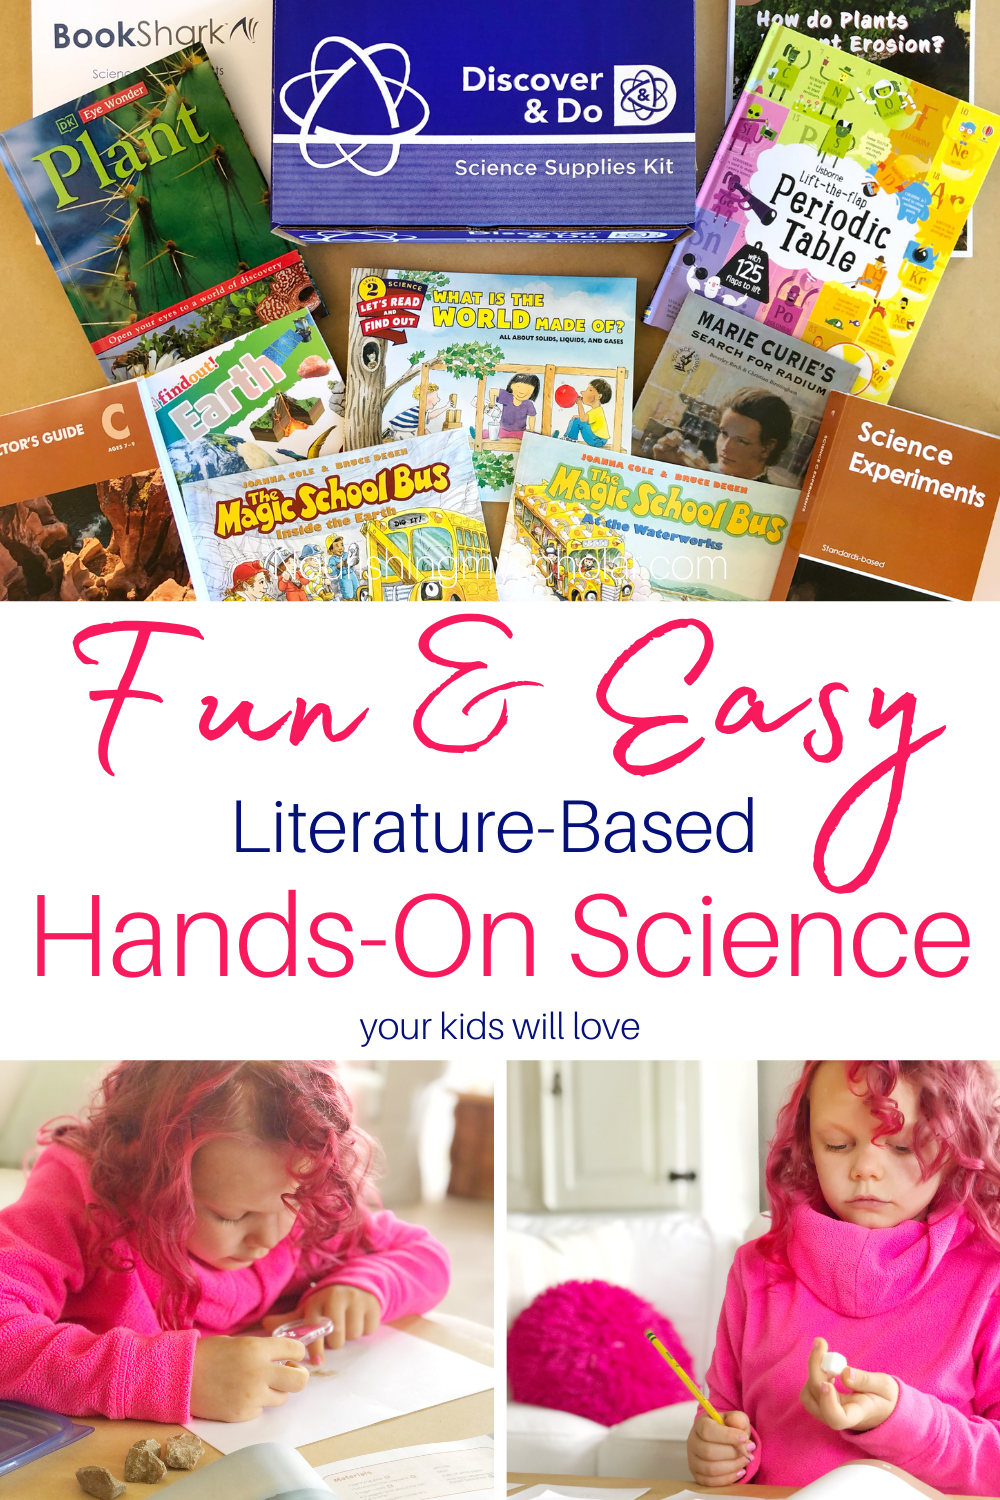 Fun and Easy Literature-Based Hands-On Science Your Kids Will Love: Hands-on experiments in an easy-to-use kit plus great literature make for the perfect homeschool science curriculum! #BookShark #BookSharkscience #handson #handsonsciencecurriculum #literaturebasedscience #science #scienceactivities #sciencecurriculum #scienceexperiments #sciencekit